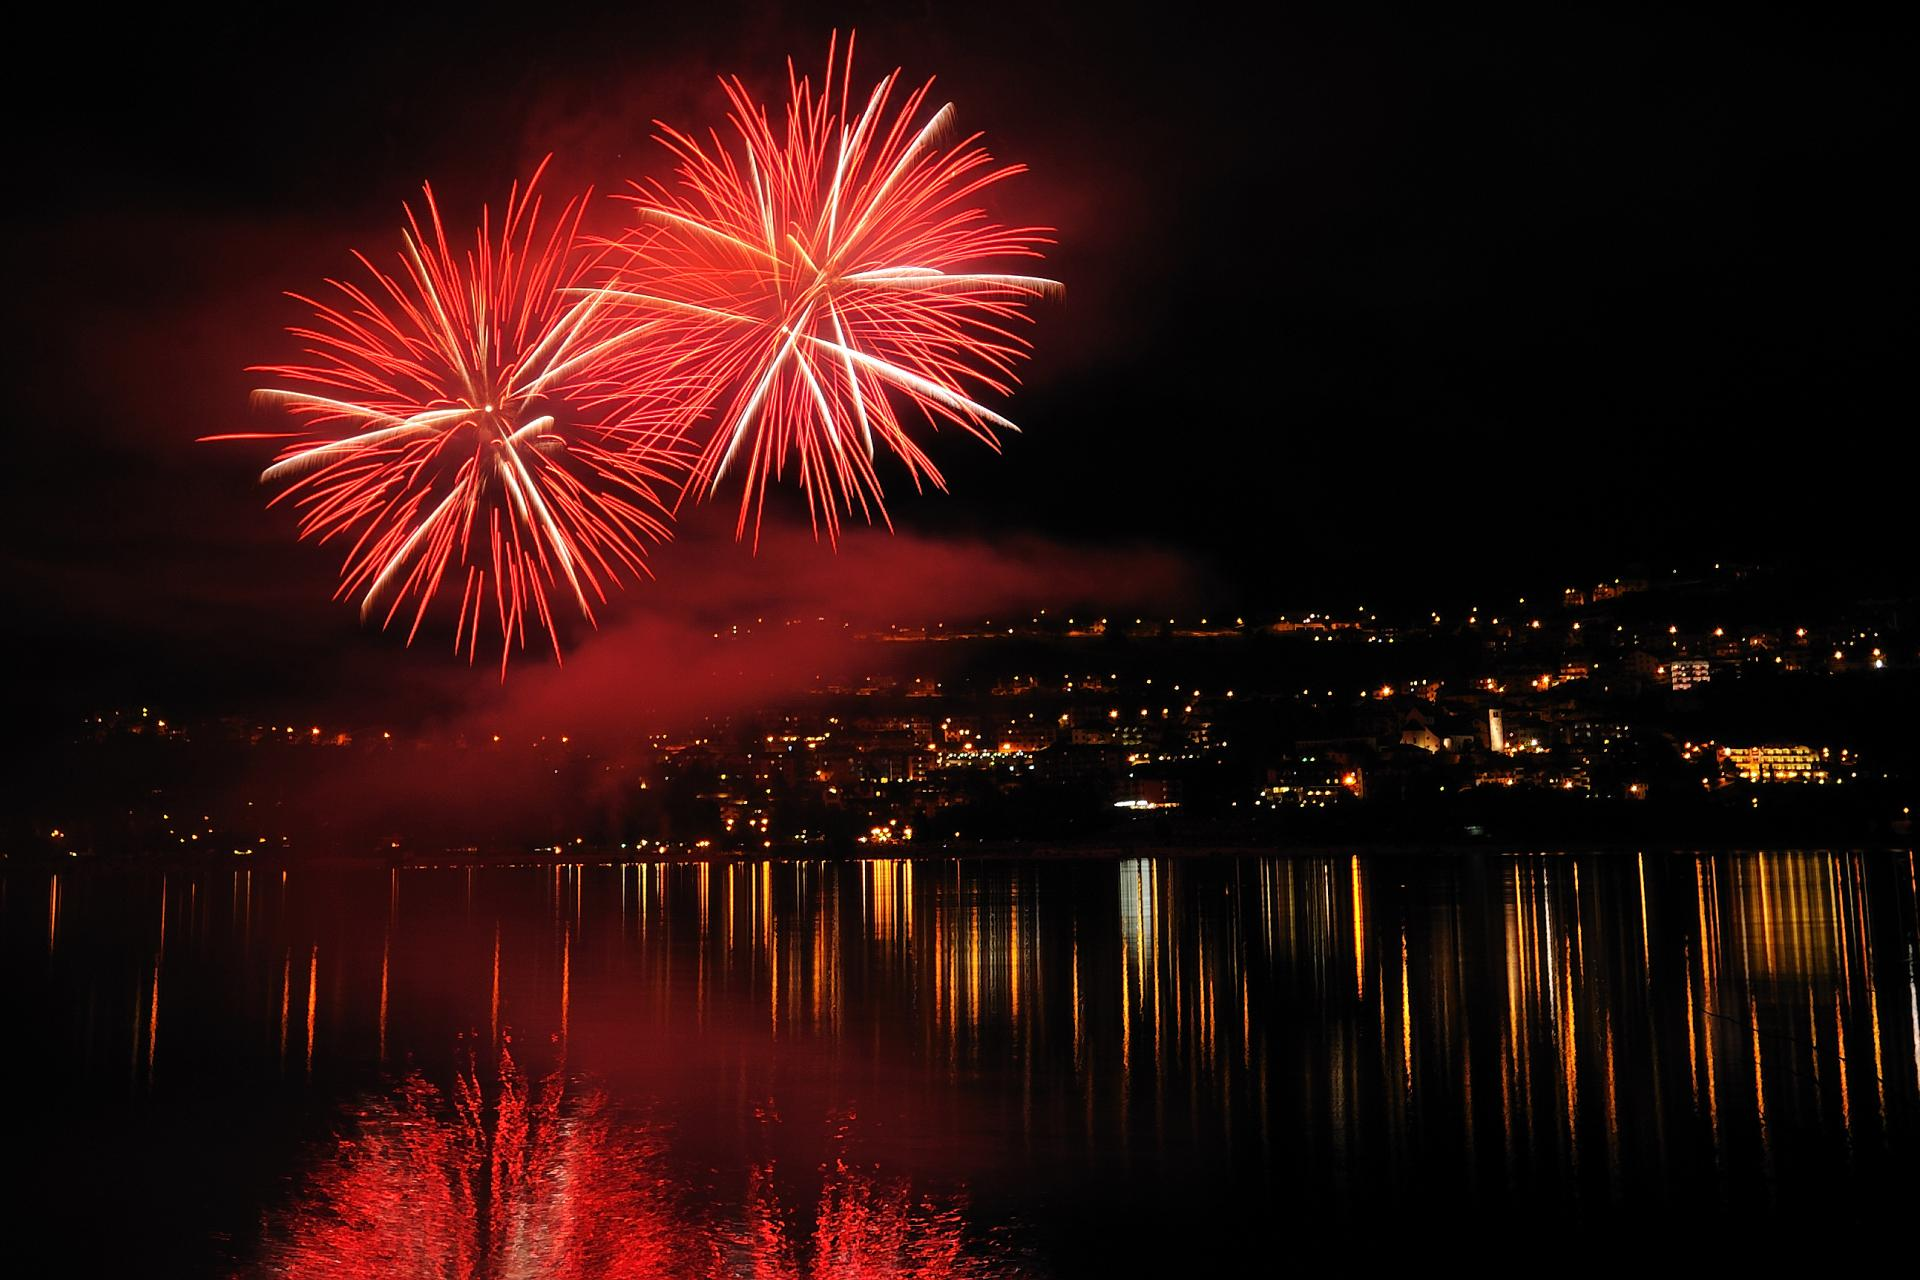 Fireworks Show in Molveno